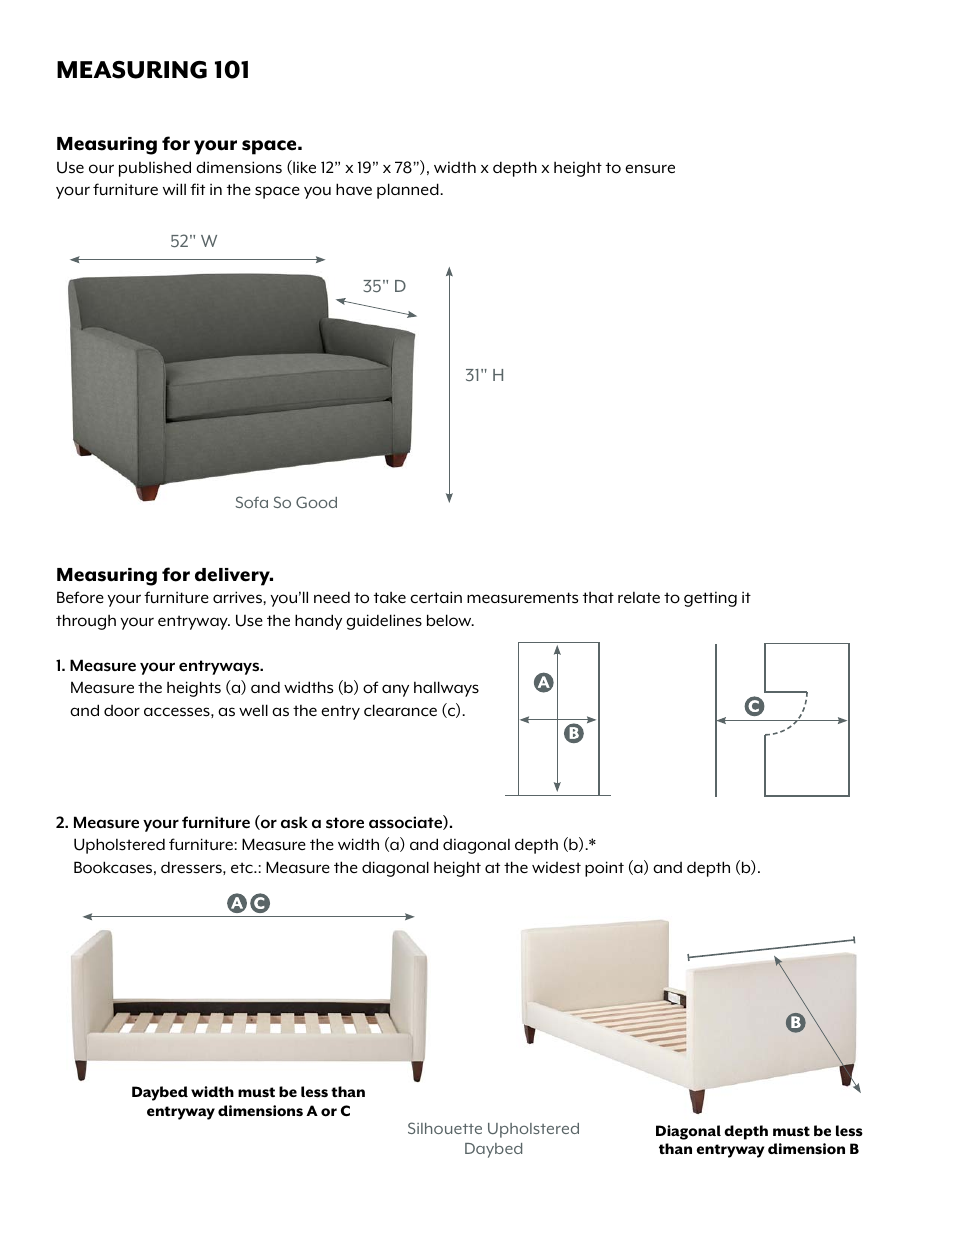 Land of nod silhouette daybed user manual 2 pages